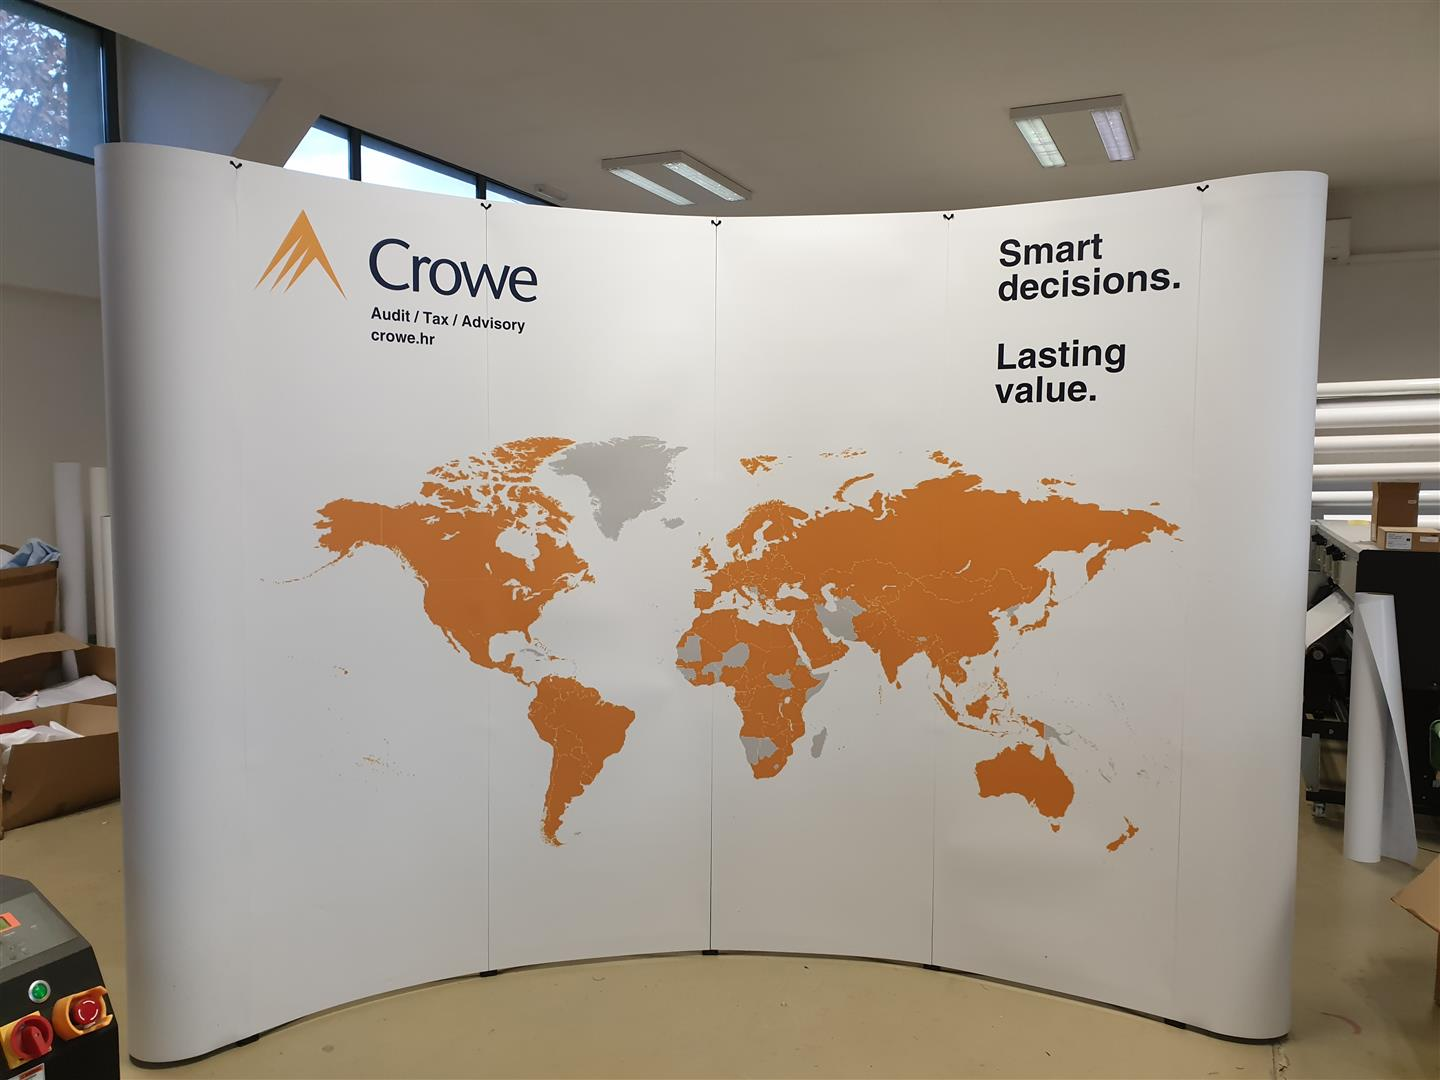 Crowe promo pult i pop-up wall